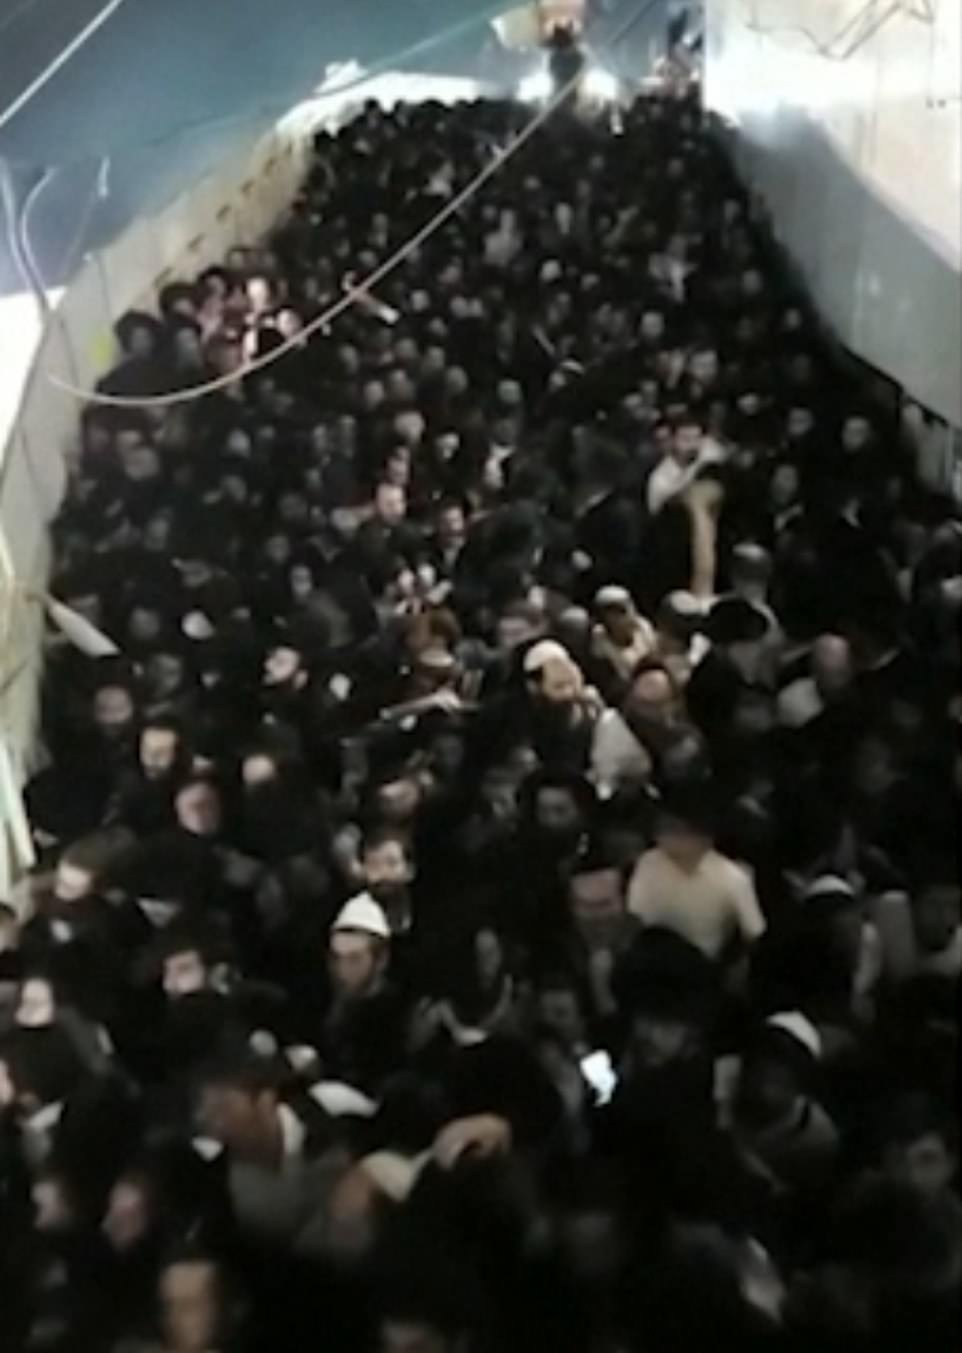 This is thought to be the area where the crush began when people slipped and fell on a stairway before others piled on top of them due to the sheer weight of numbers, meaning they were unable to get up